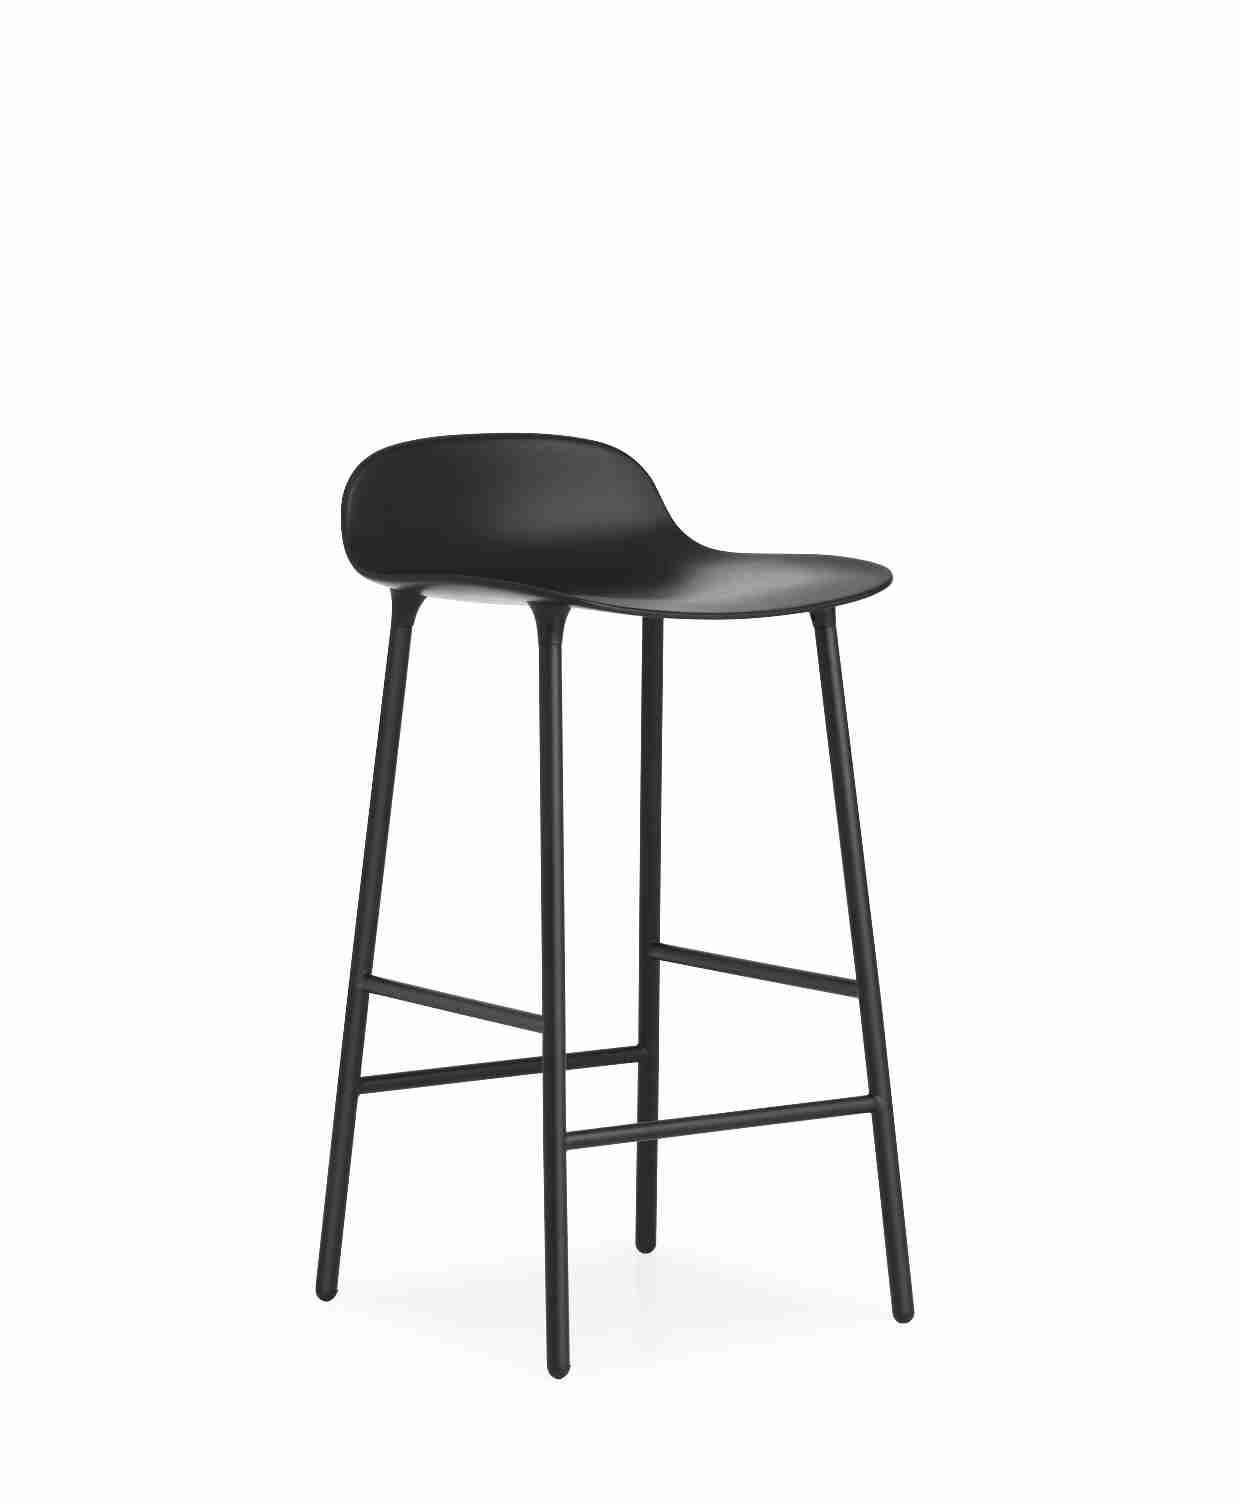 Image of   Normann copenhagen form barstol 65 cm stål (sort)